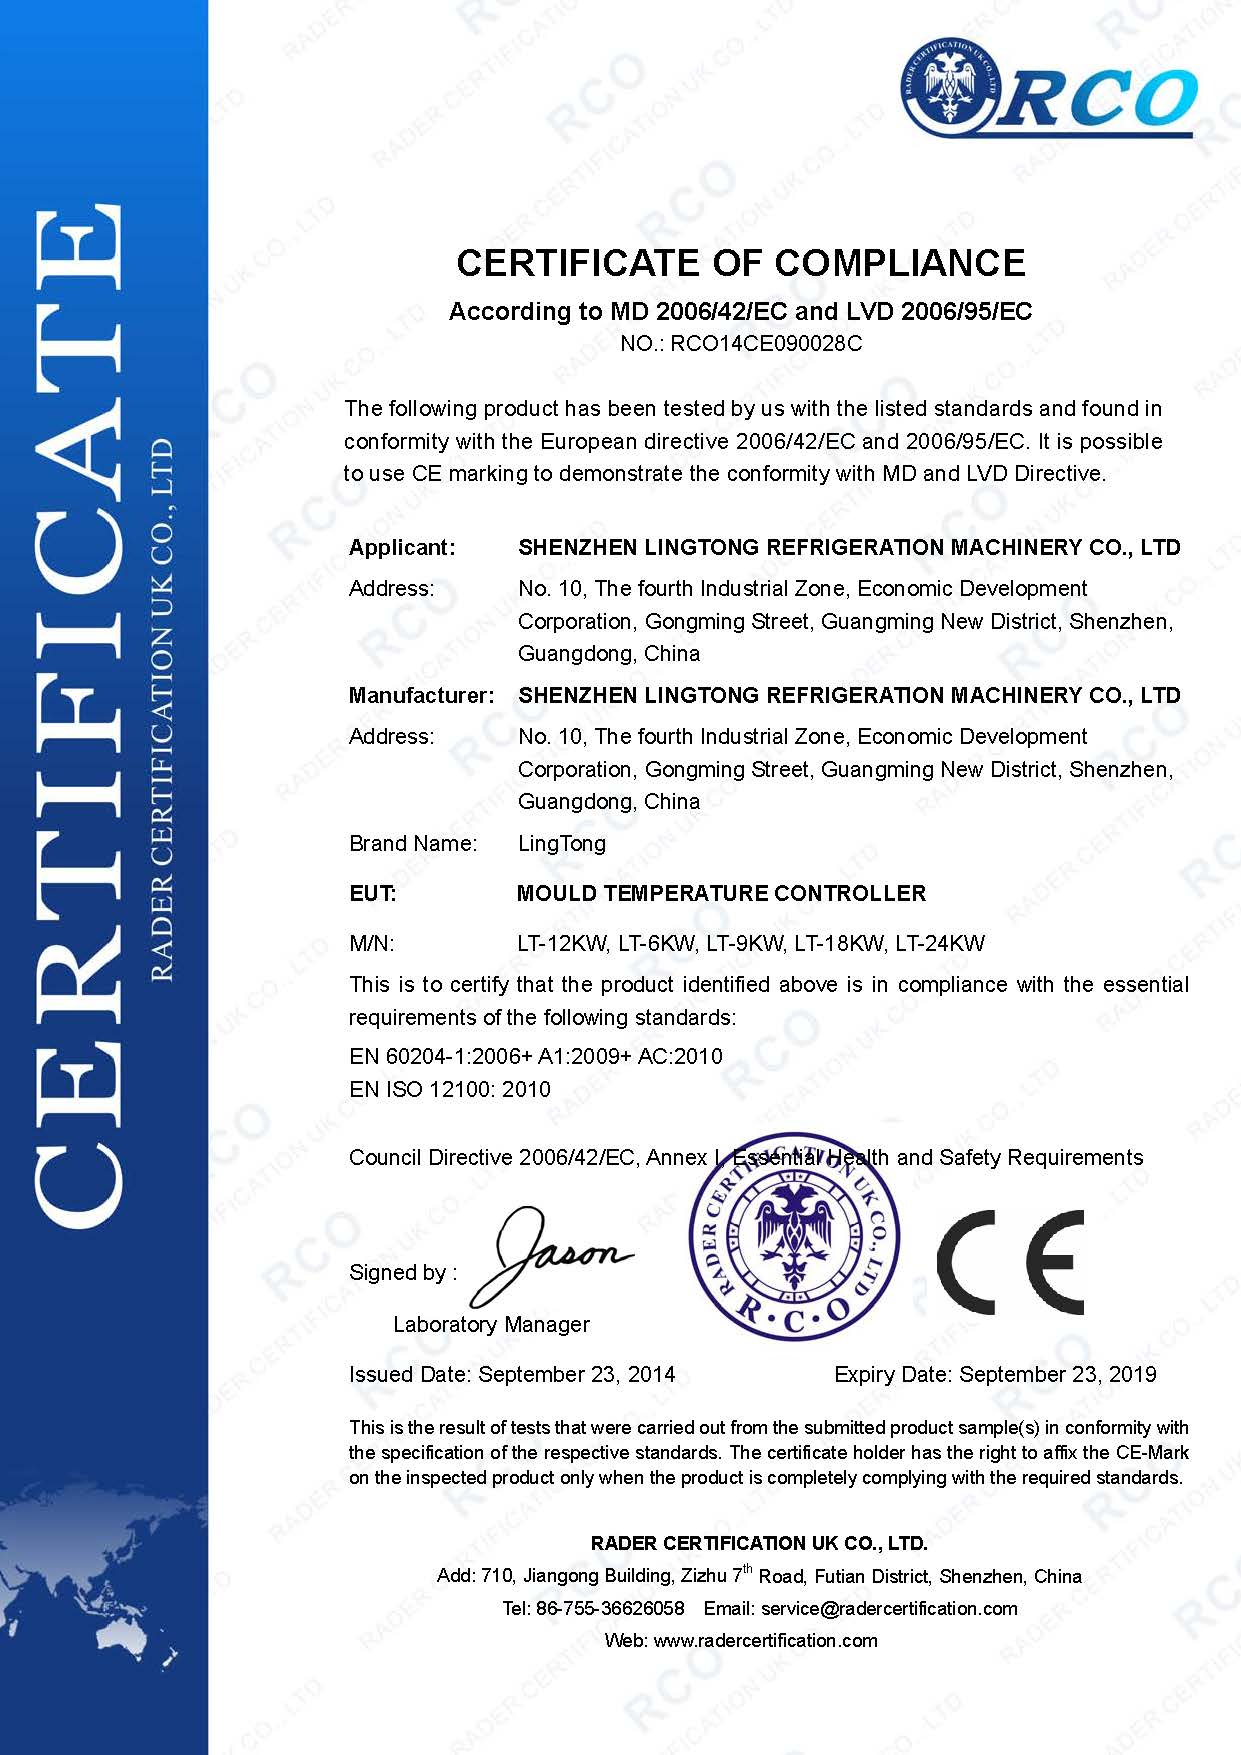 Mould Temperature Controller CE Certification